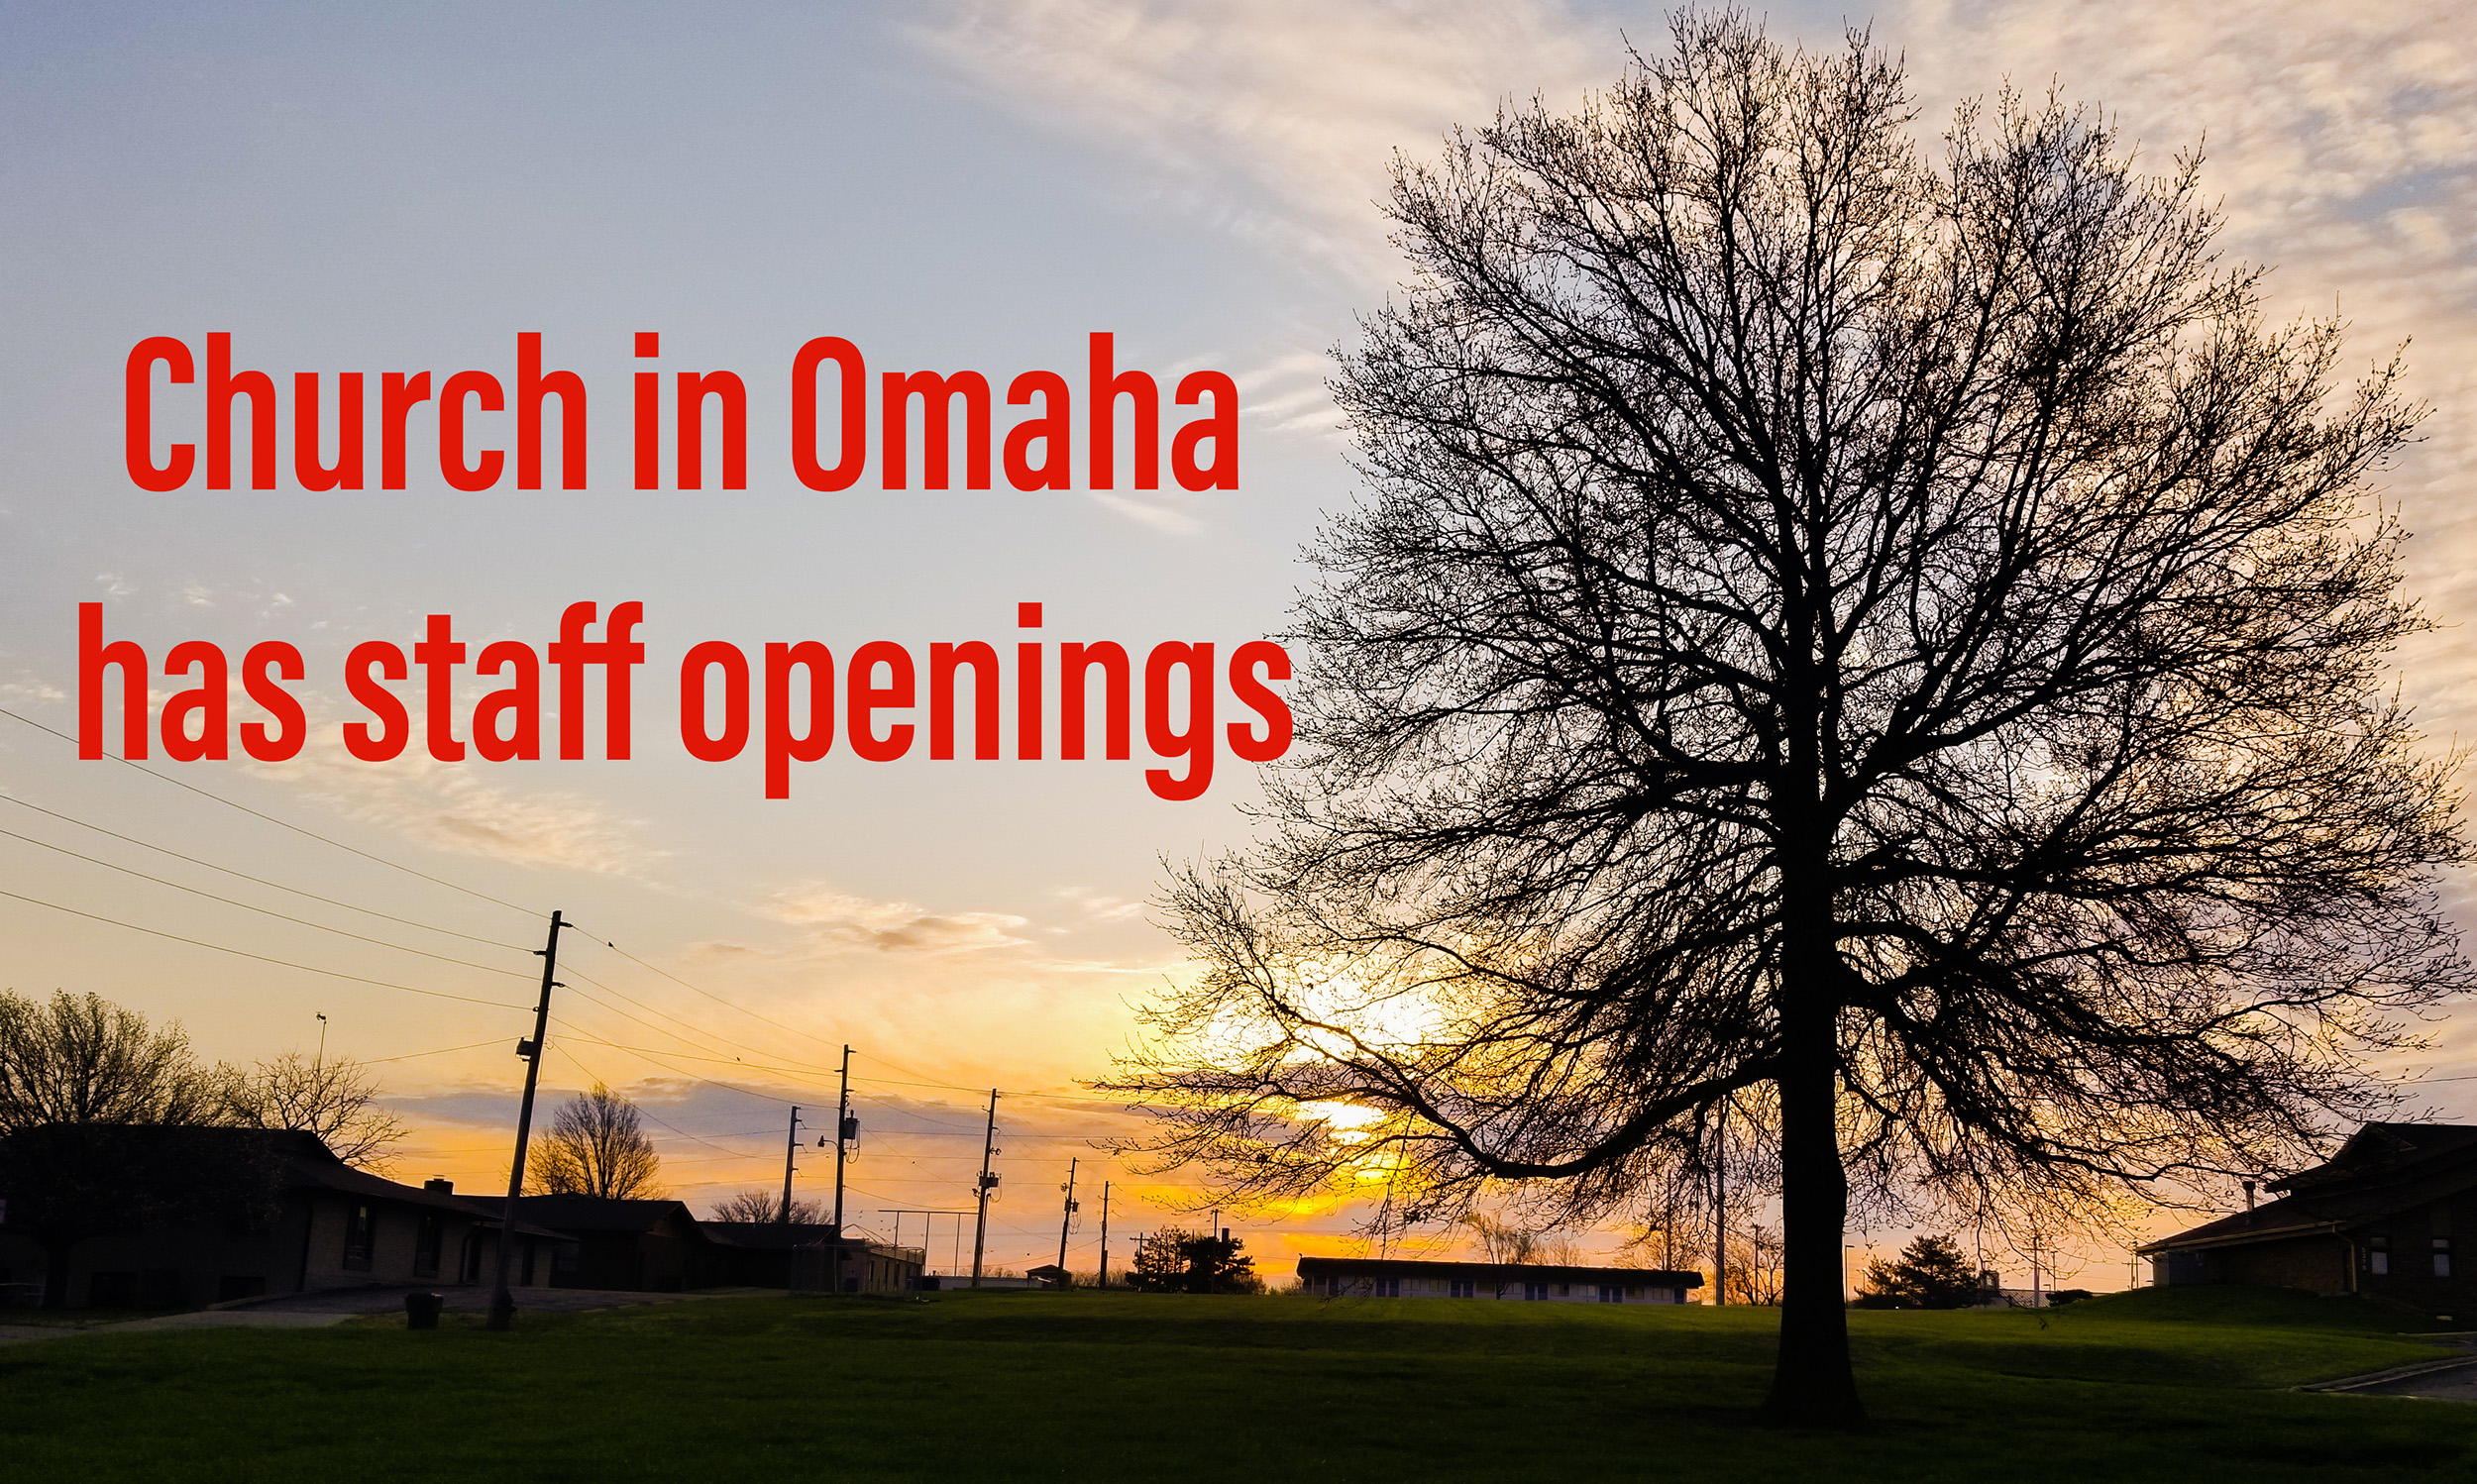 Church in Omaha has two staff openings